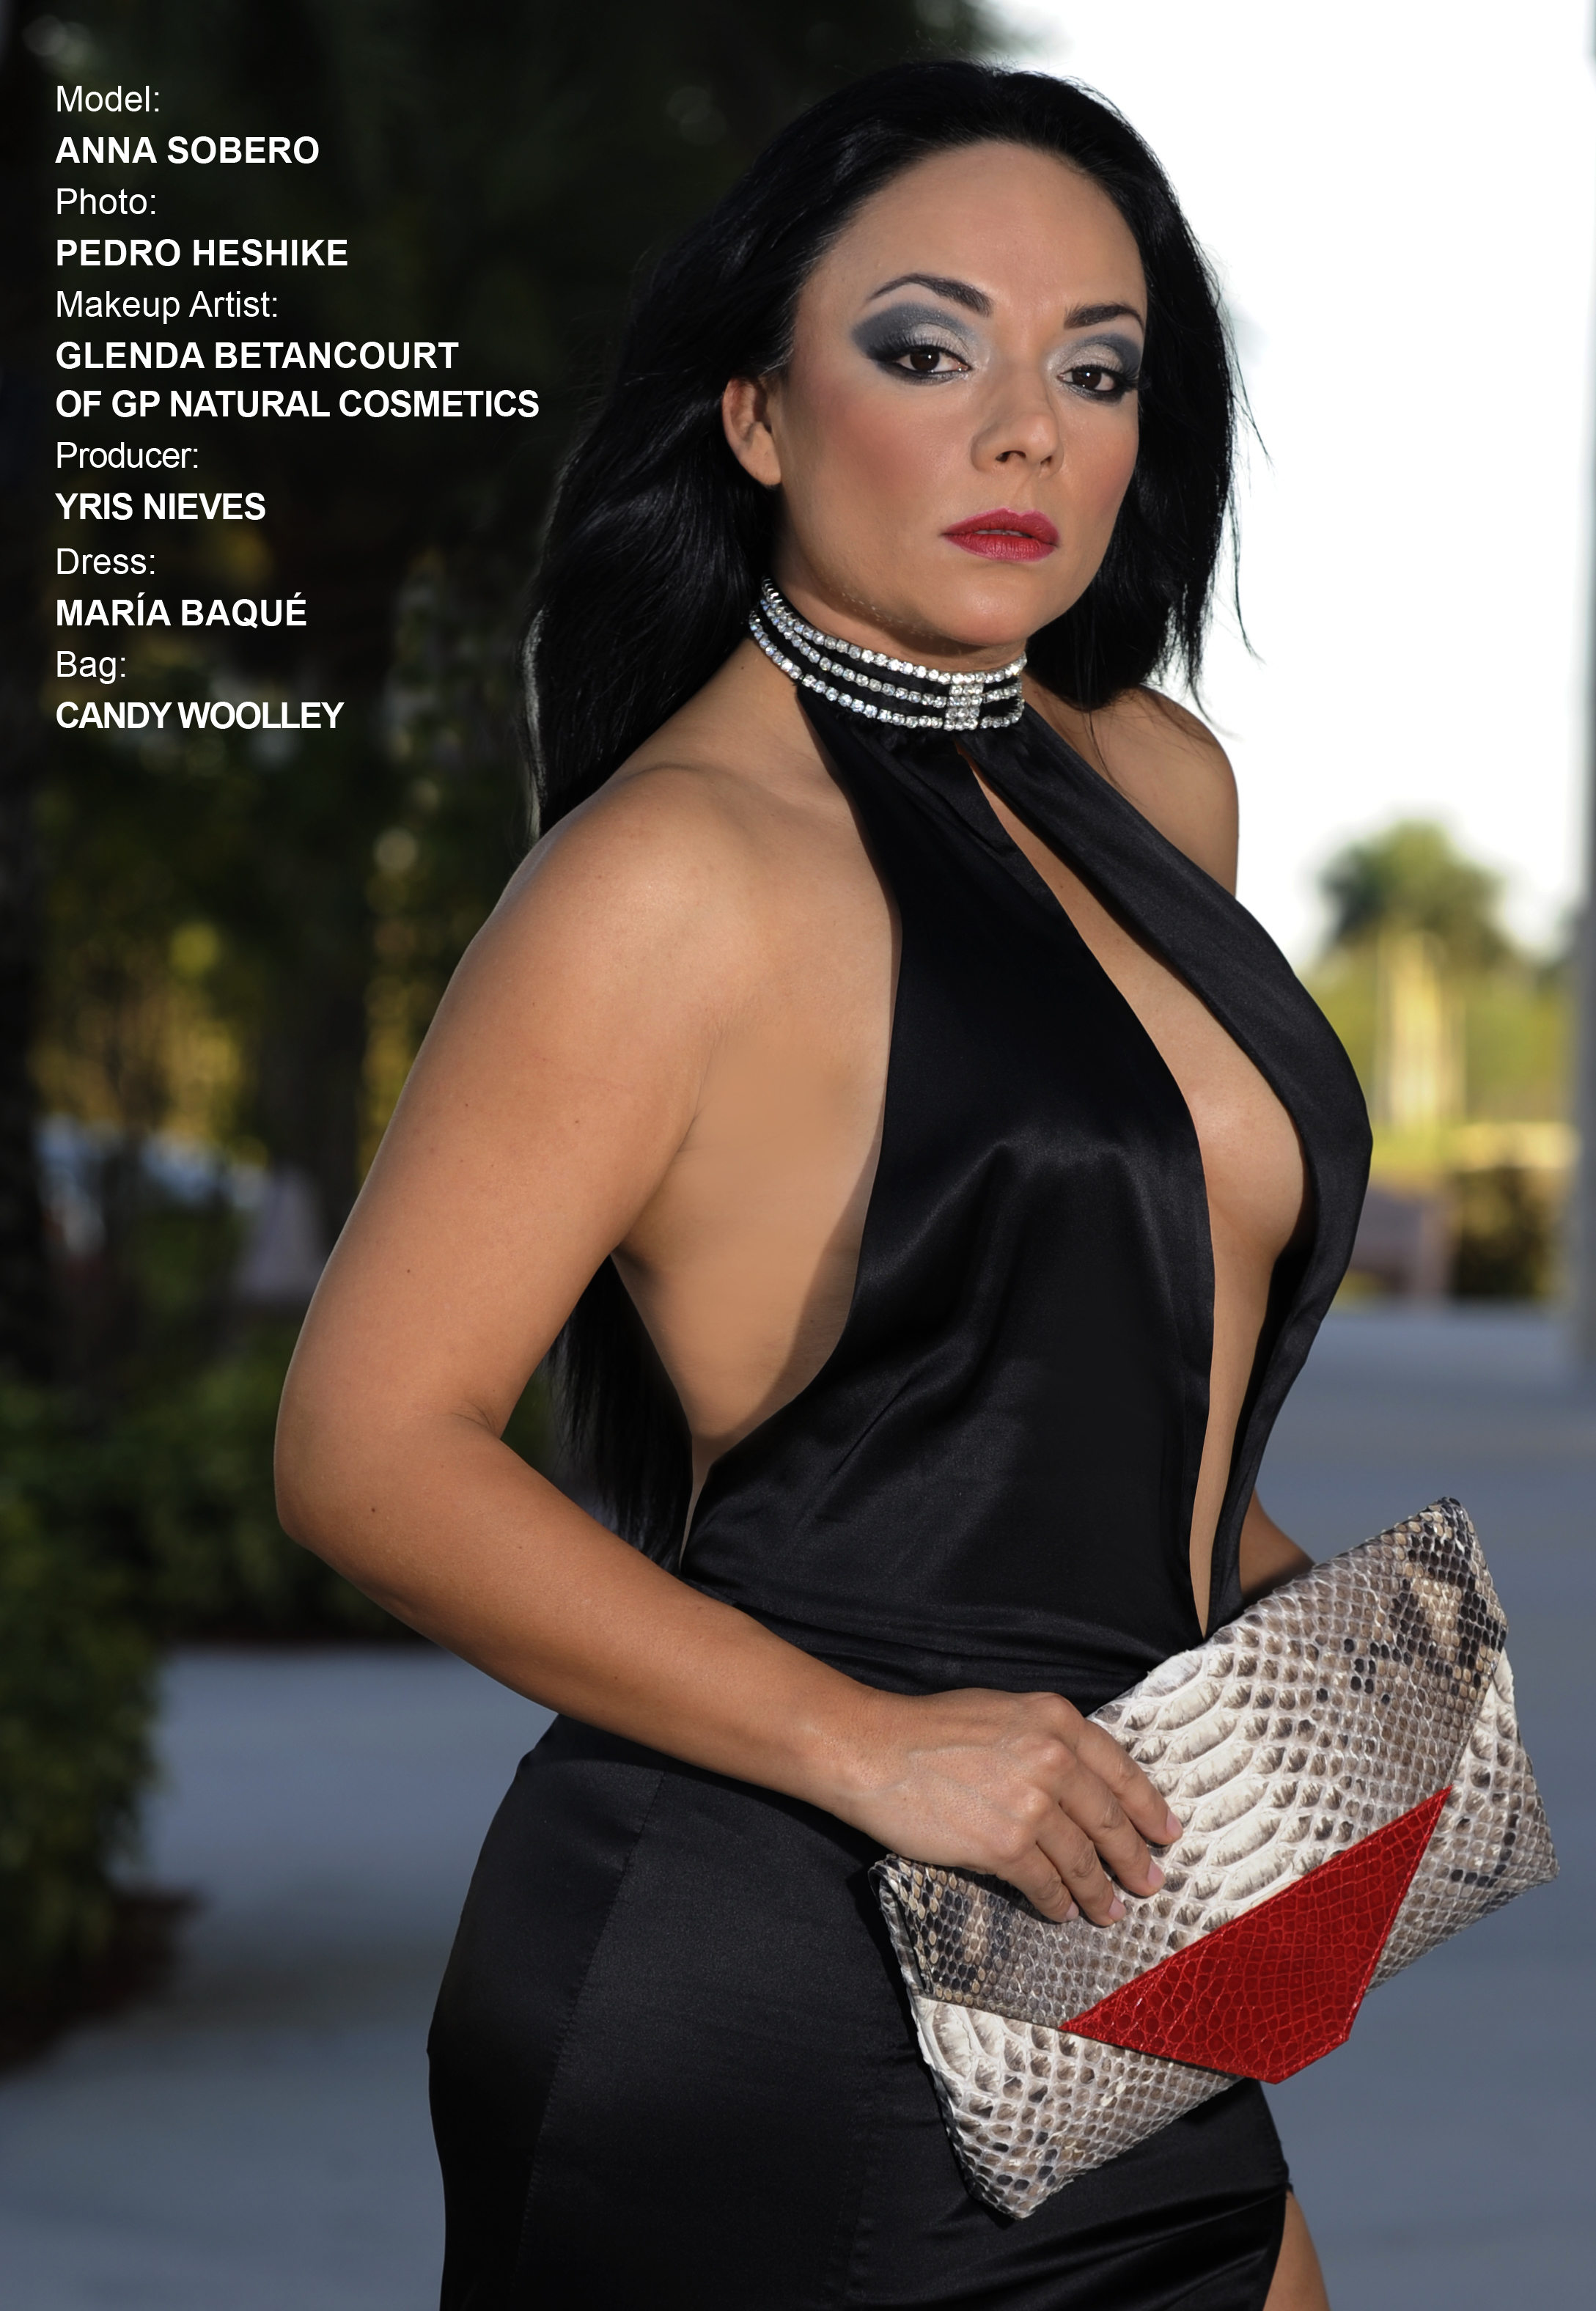 Ana Carolina Playboy candy woolley: interview with actress and former playboy